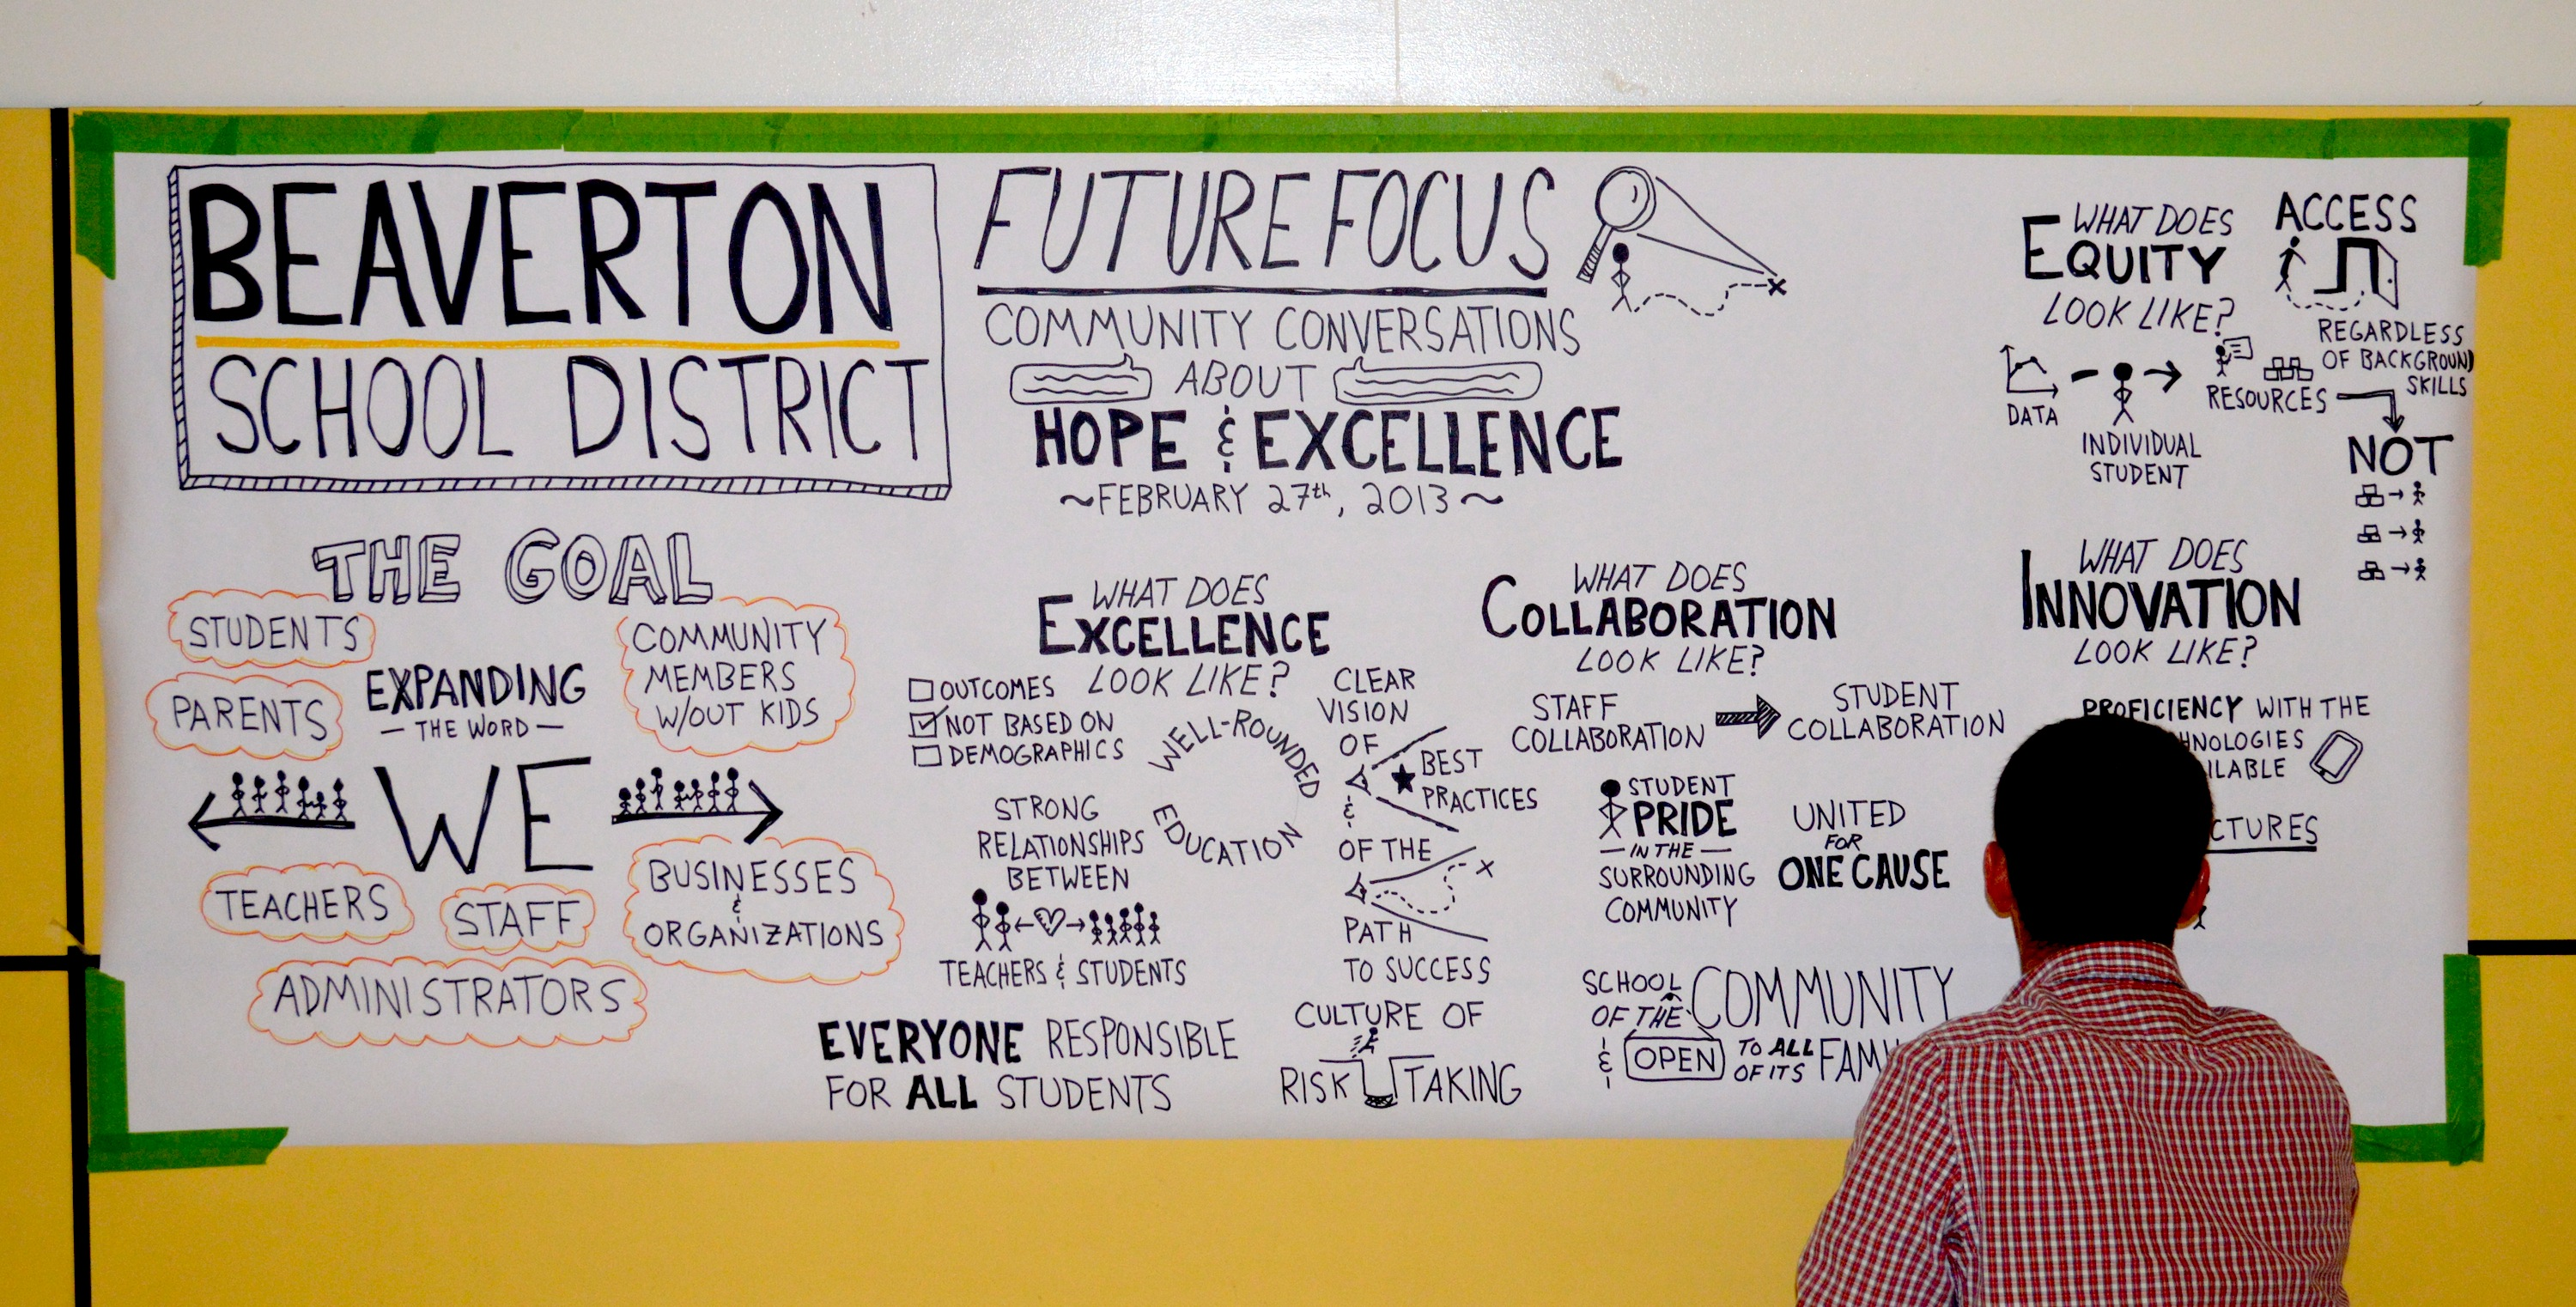 Doug Neill Graphic Recording - Beaverton School District - future focus, community conversations about hope and excellence